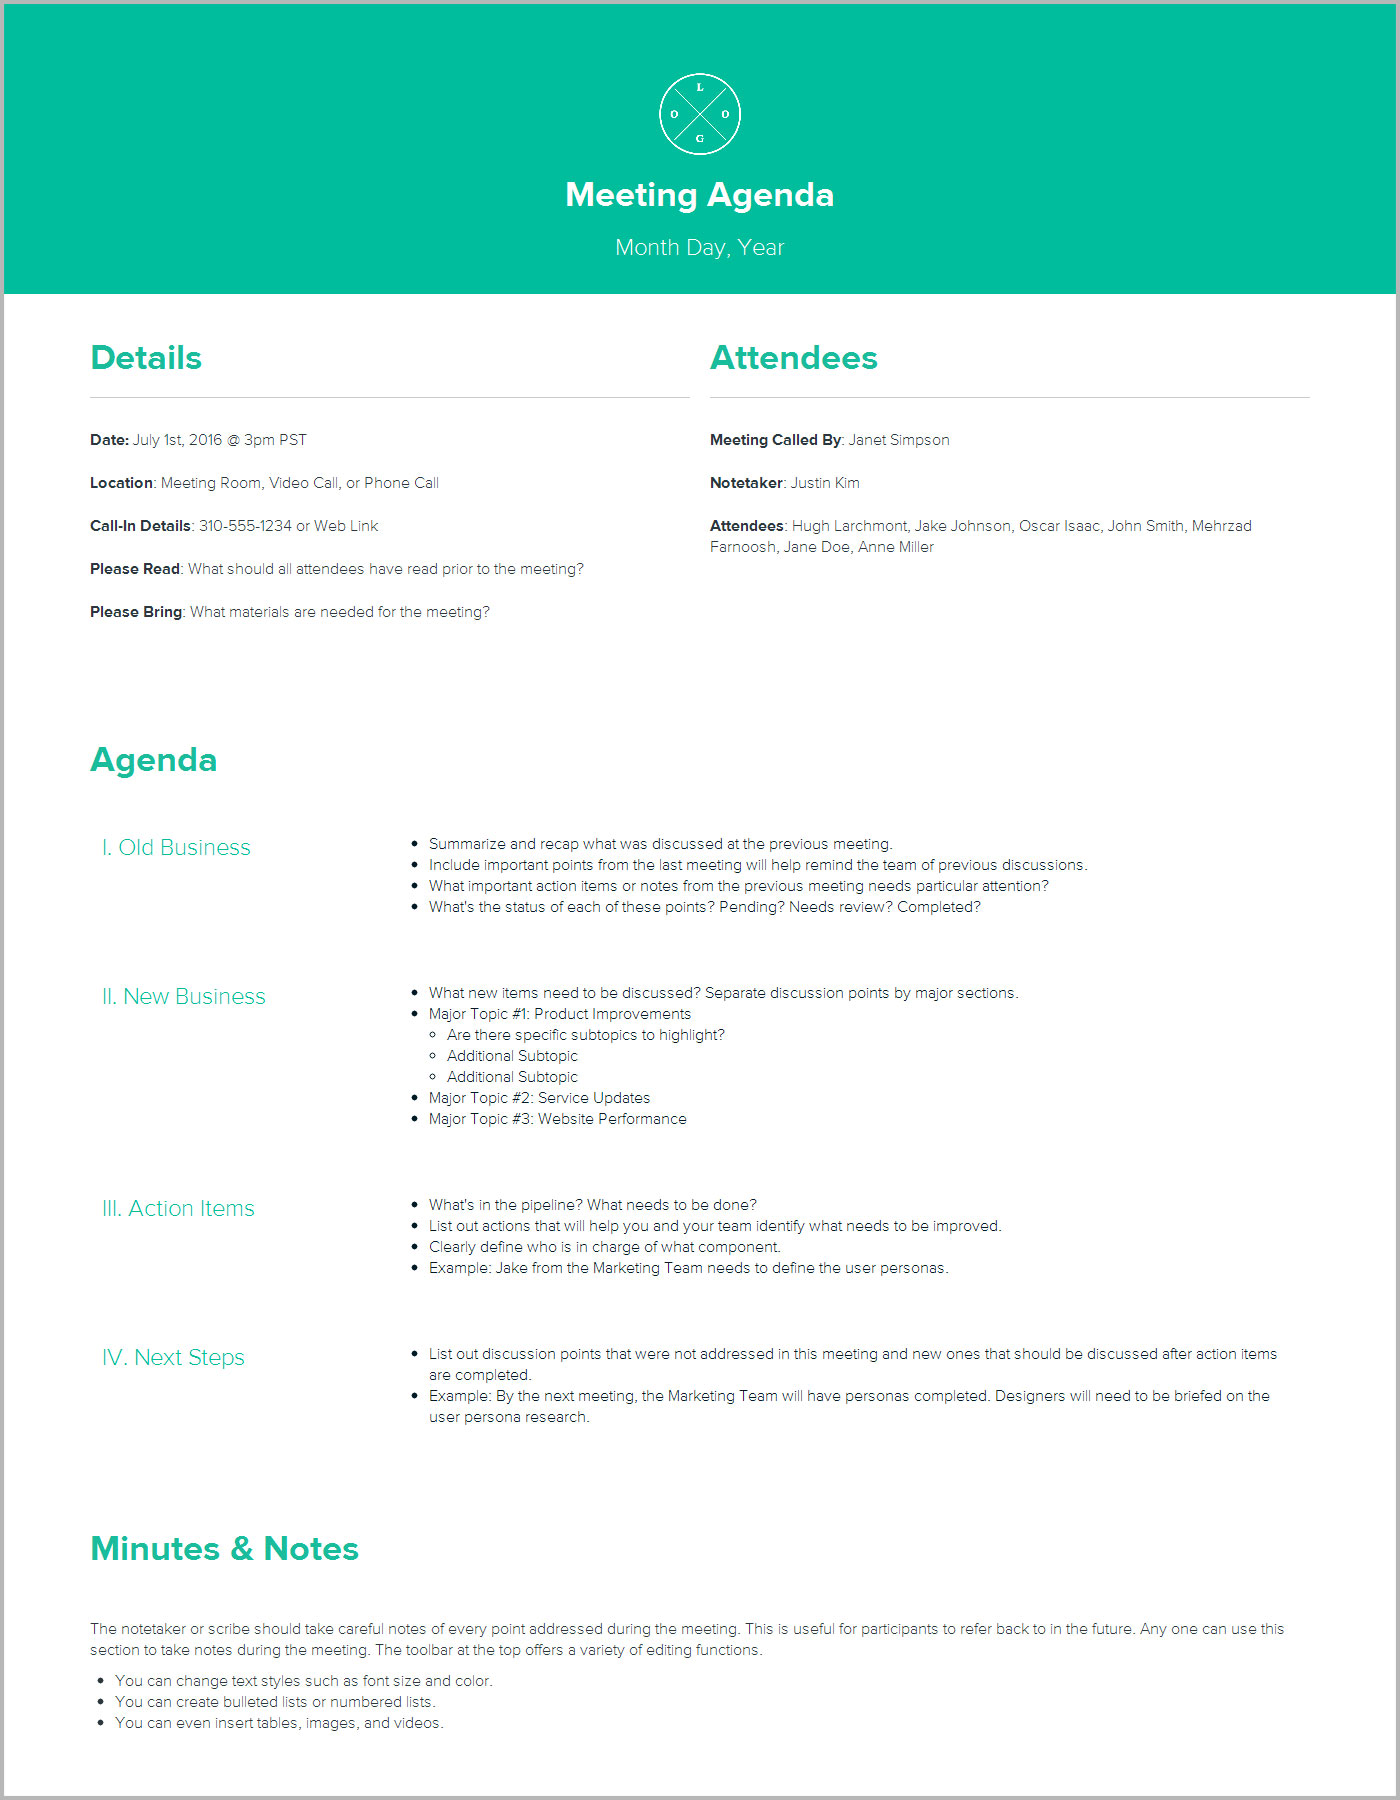 How to create a meeting agenda xtensio meeting agenda template by xtensio accmission Choice Image